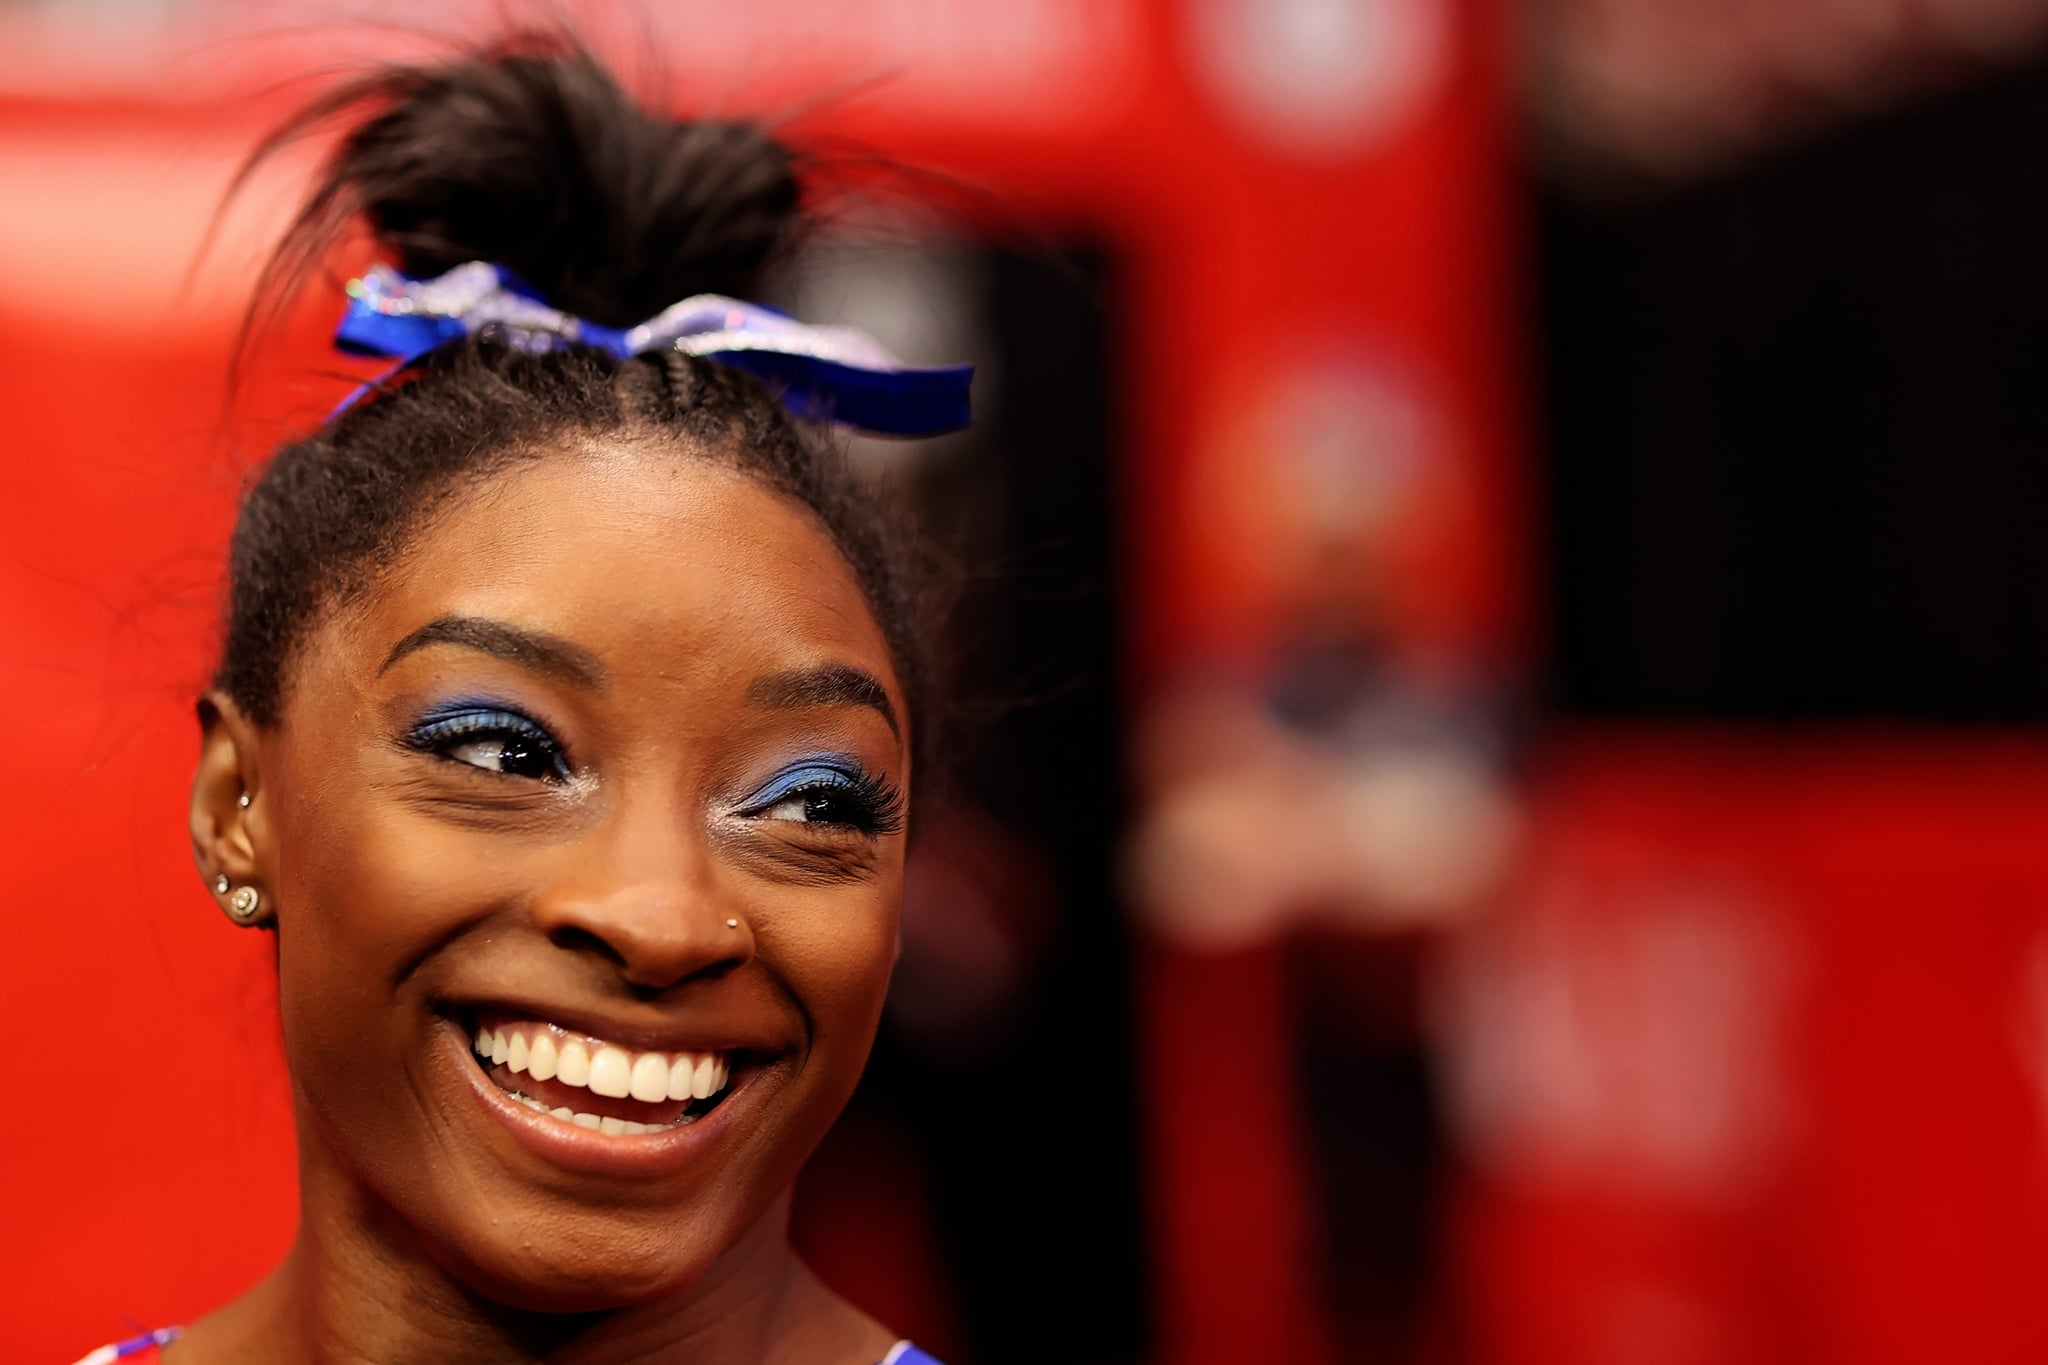 ST LOUIS, MISSOURI - JUNE 25: Simone Biles warms up prior to competition on day 2 of the women's 2021 U.S. Olympic Trials - Gymnastics at America's Centre on June 25, 2021 in St Louis, Missouri. (Photo by Carmen Mandato/Getty Images)